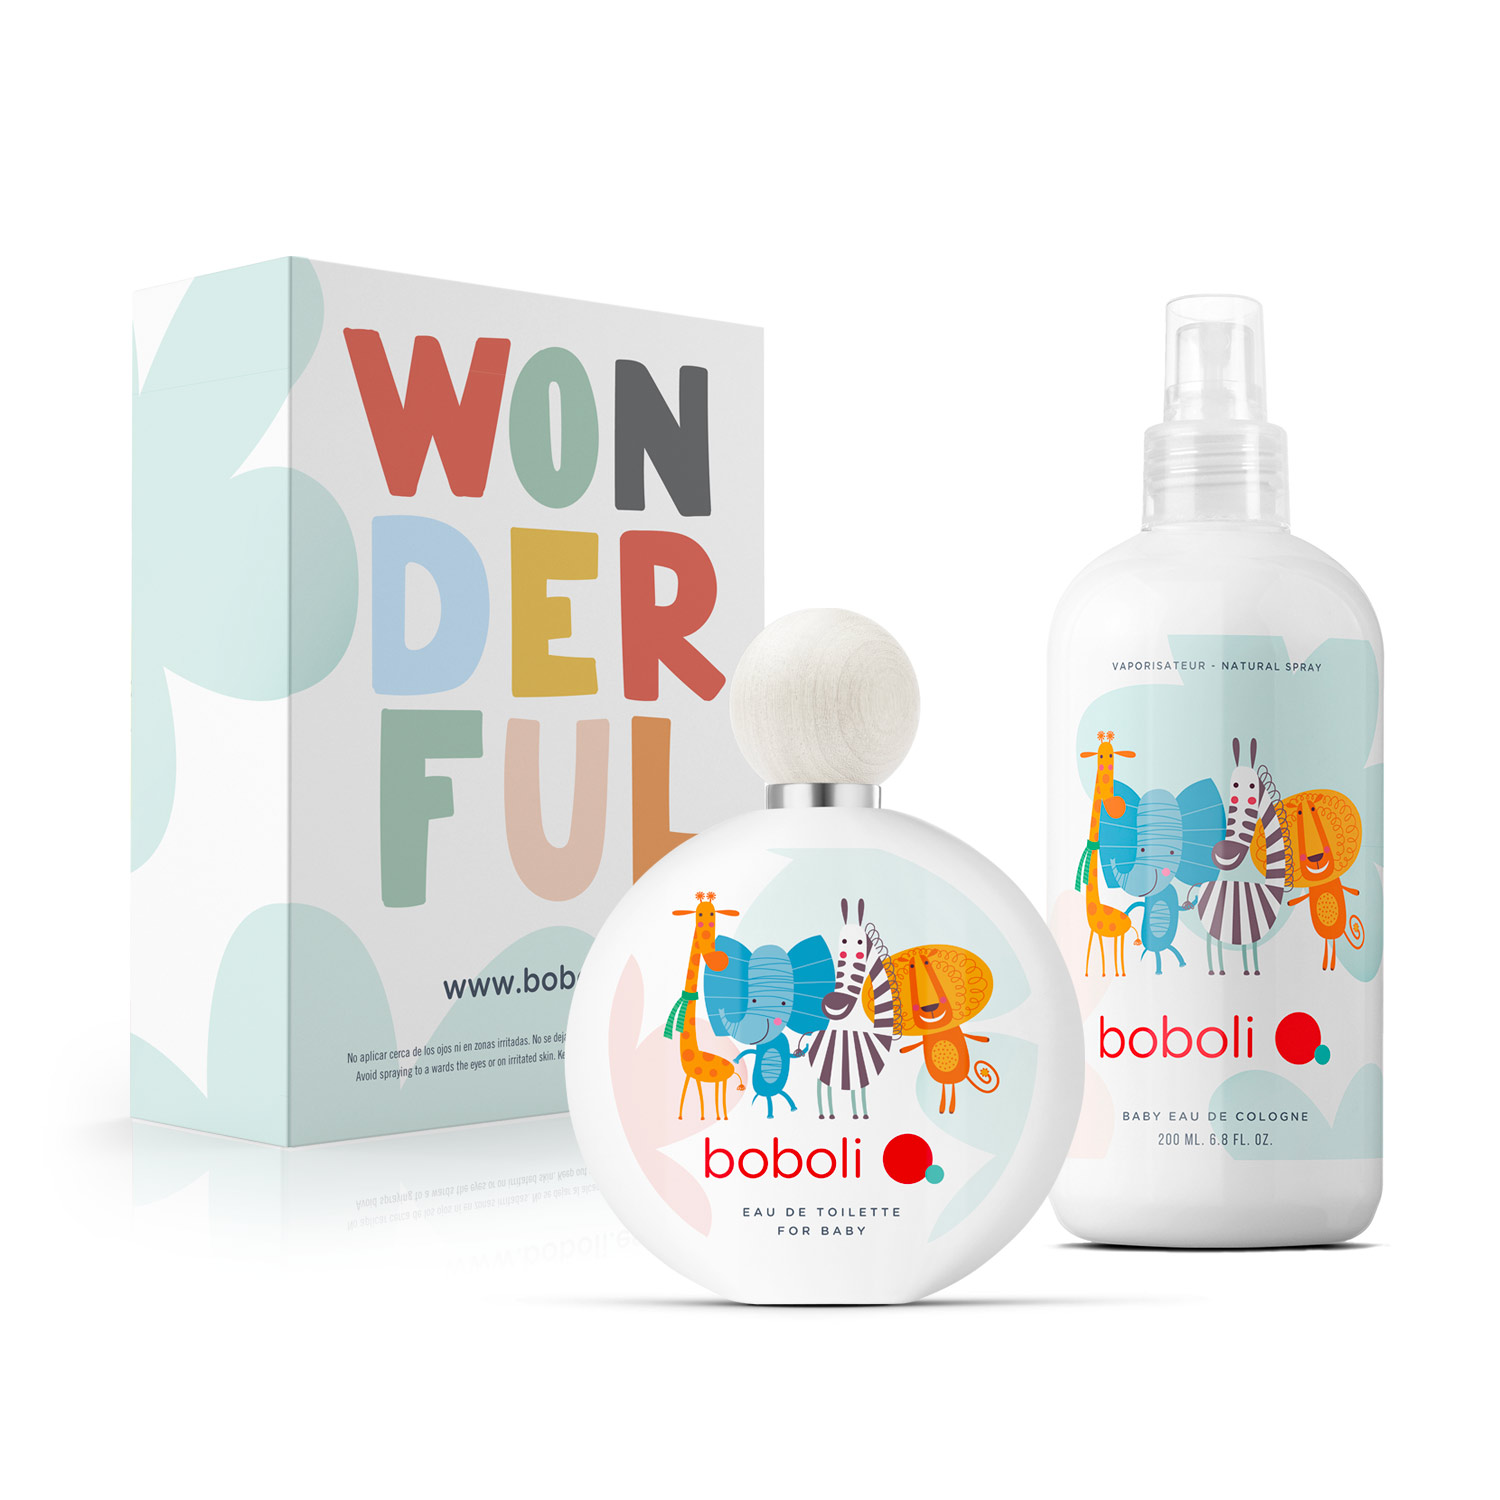 Magasalfa-EDT-boboli-Baby-Eau-the-toilette-body-spray-wonderful